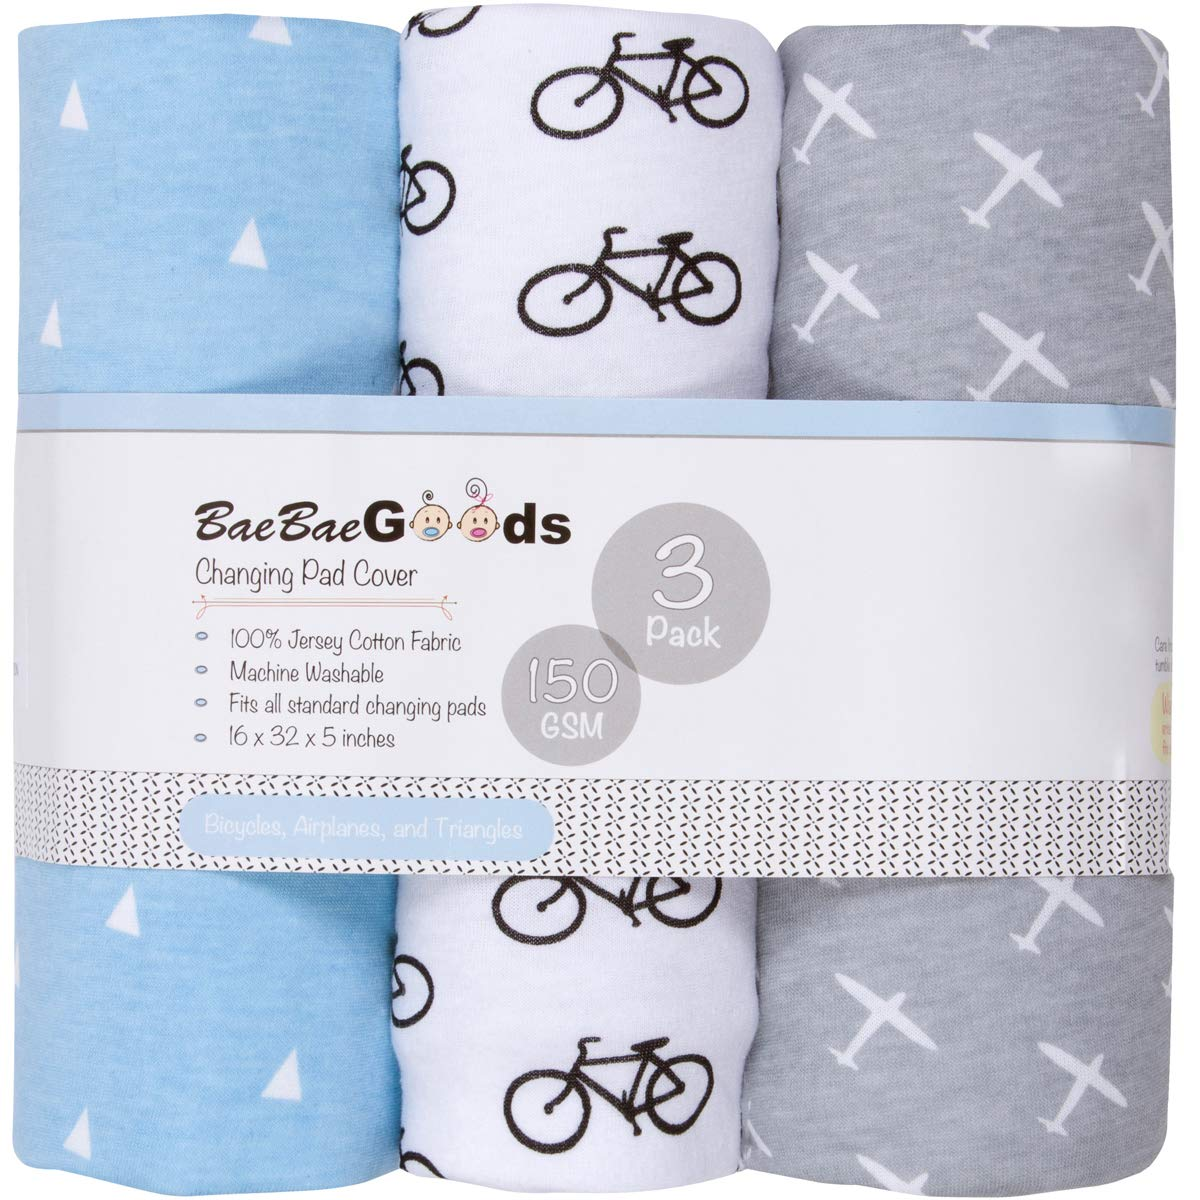 Changing Pad Cover Set | Cradle Bassinet Sheets/Change Table Covers for Boys & Girls | Super Soft 100% Jersey Knit Cotton | Grey and White | 150 GSM | 3 Pack BaeBae & Company